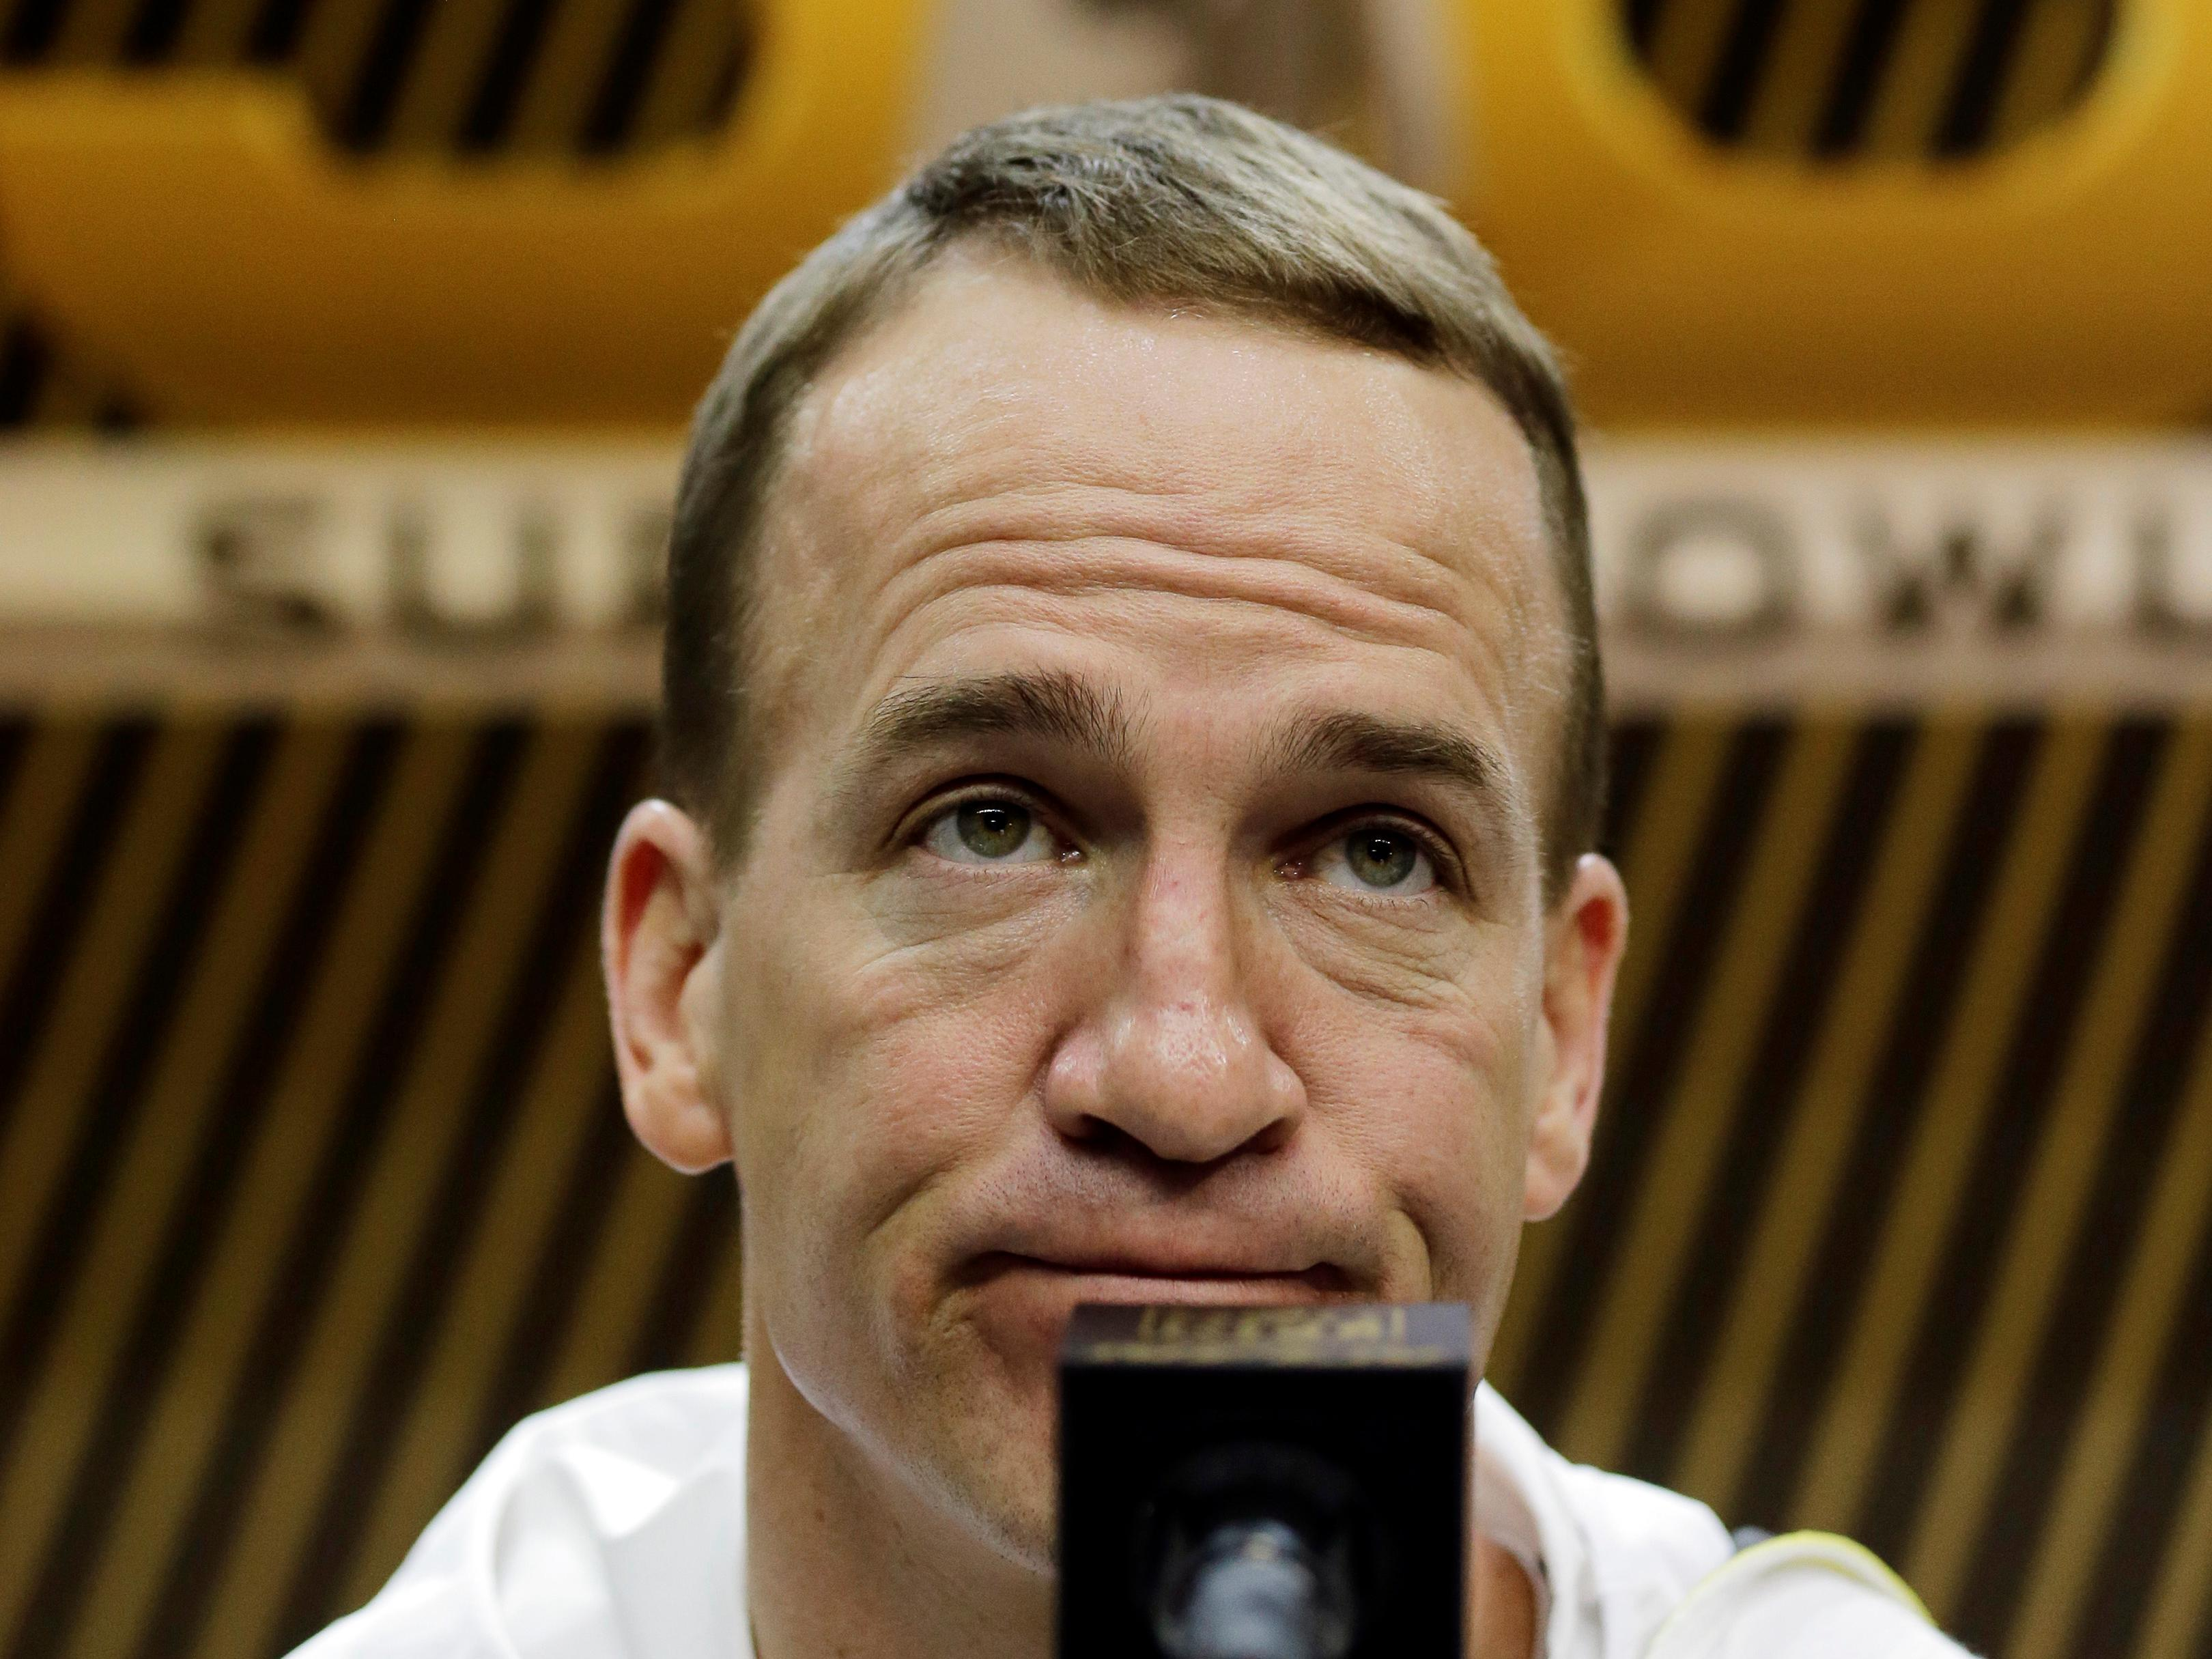 Report: Peyton Manning sent investigators to look into person behind HGH allegations